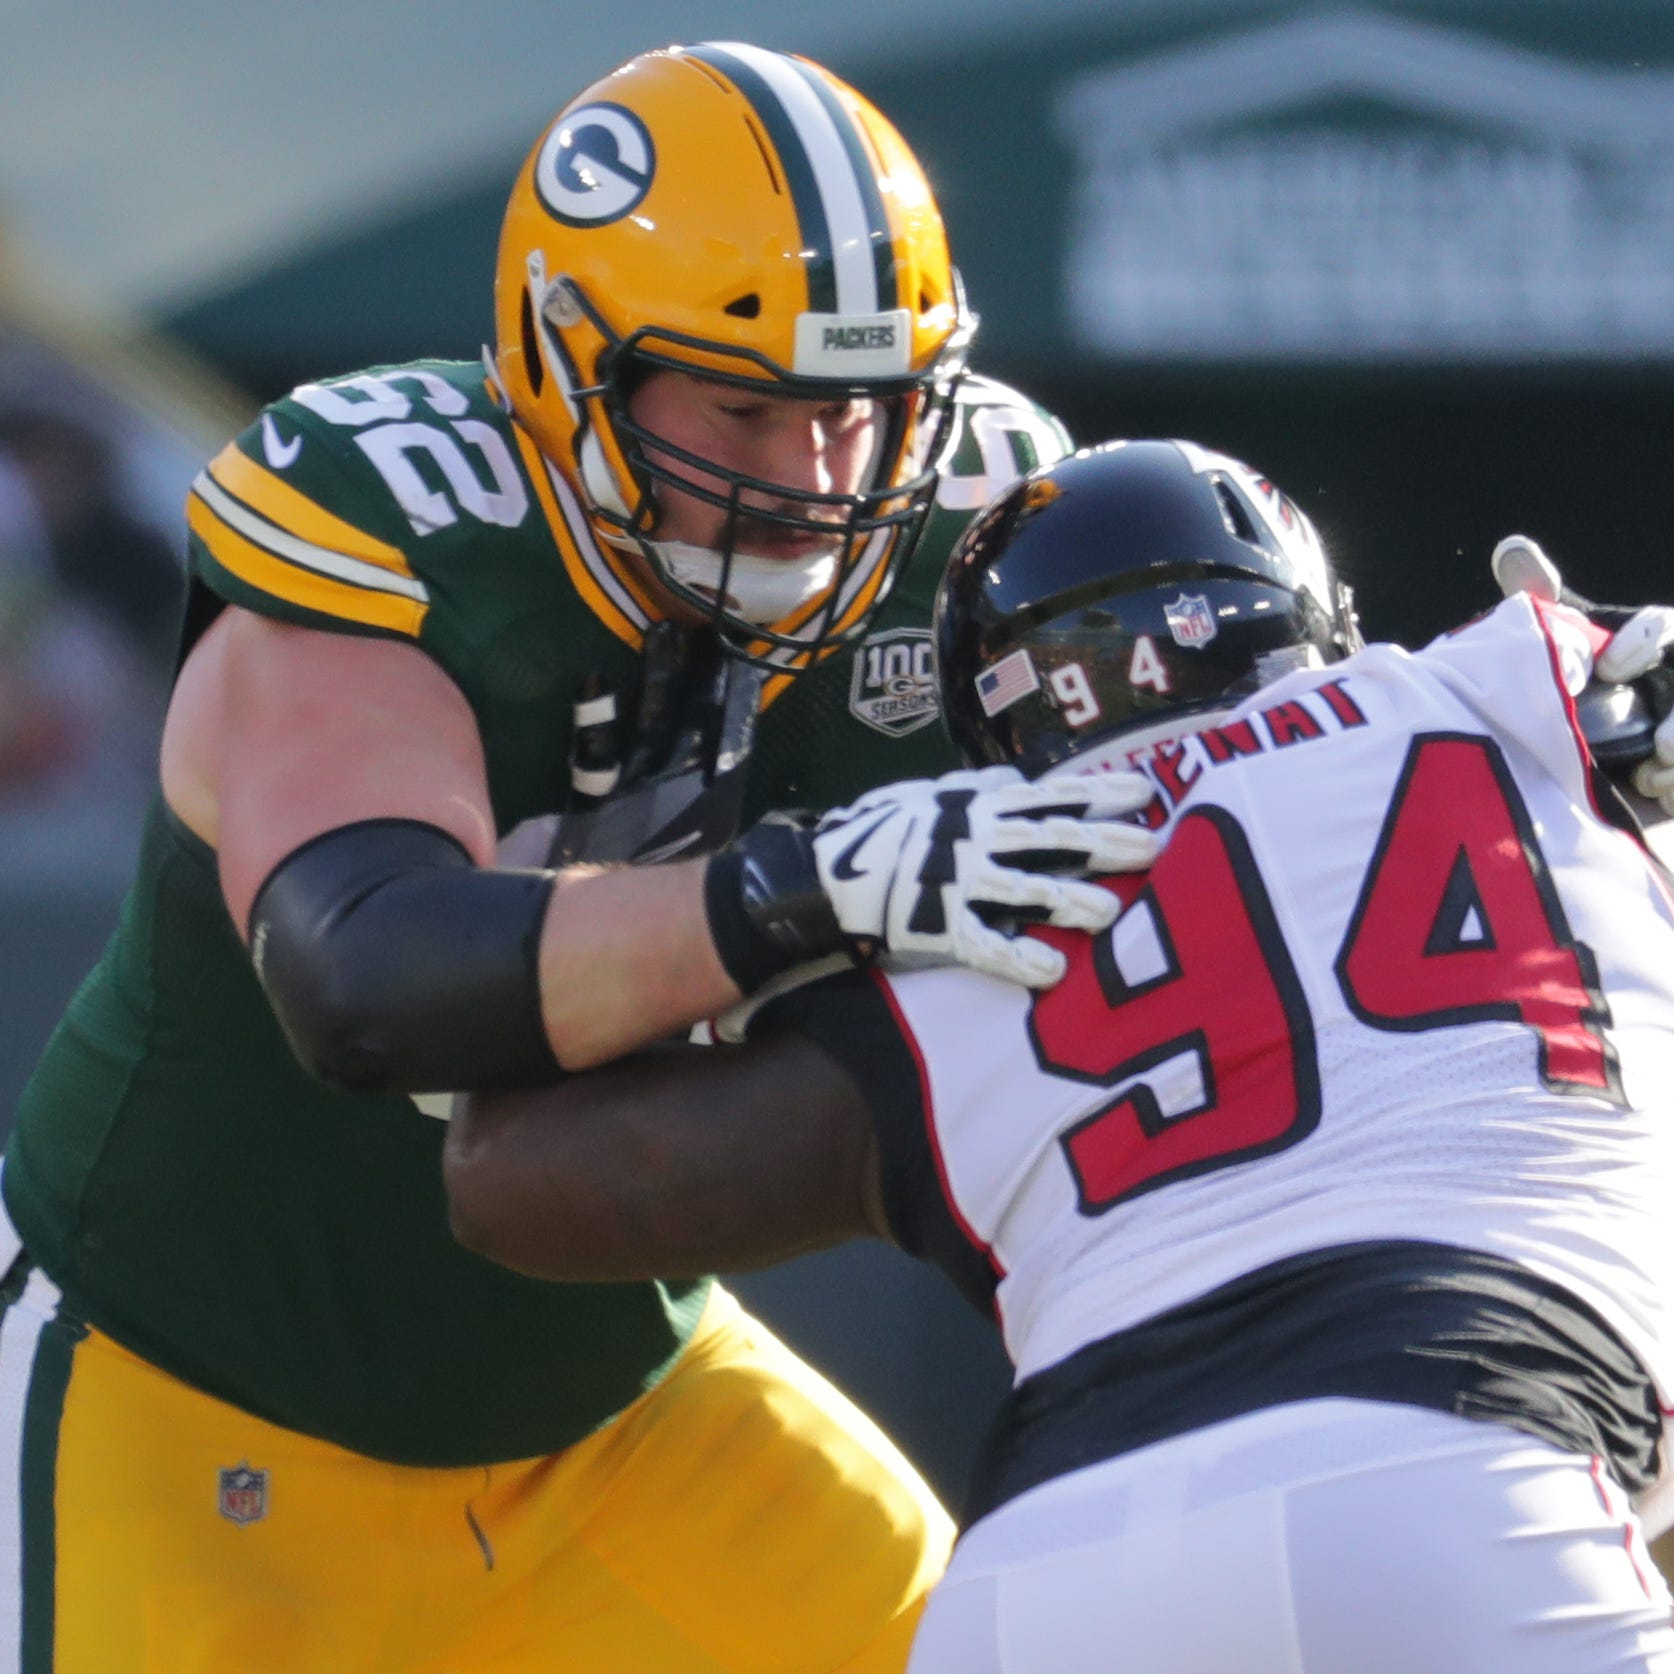 Packers' backup offensive linemen draw on past experience to find chemistry